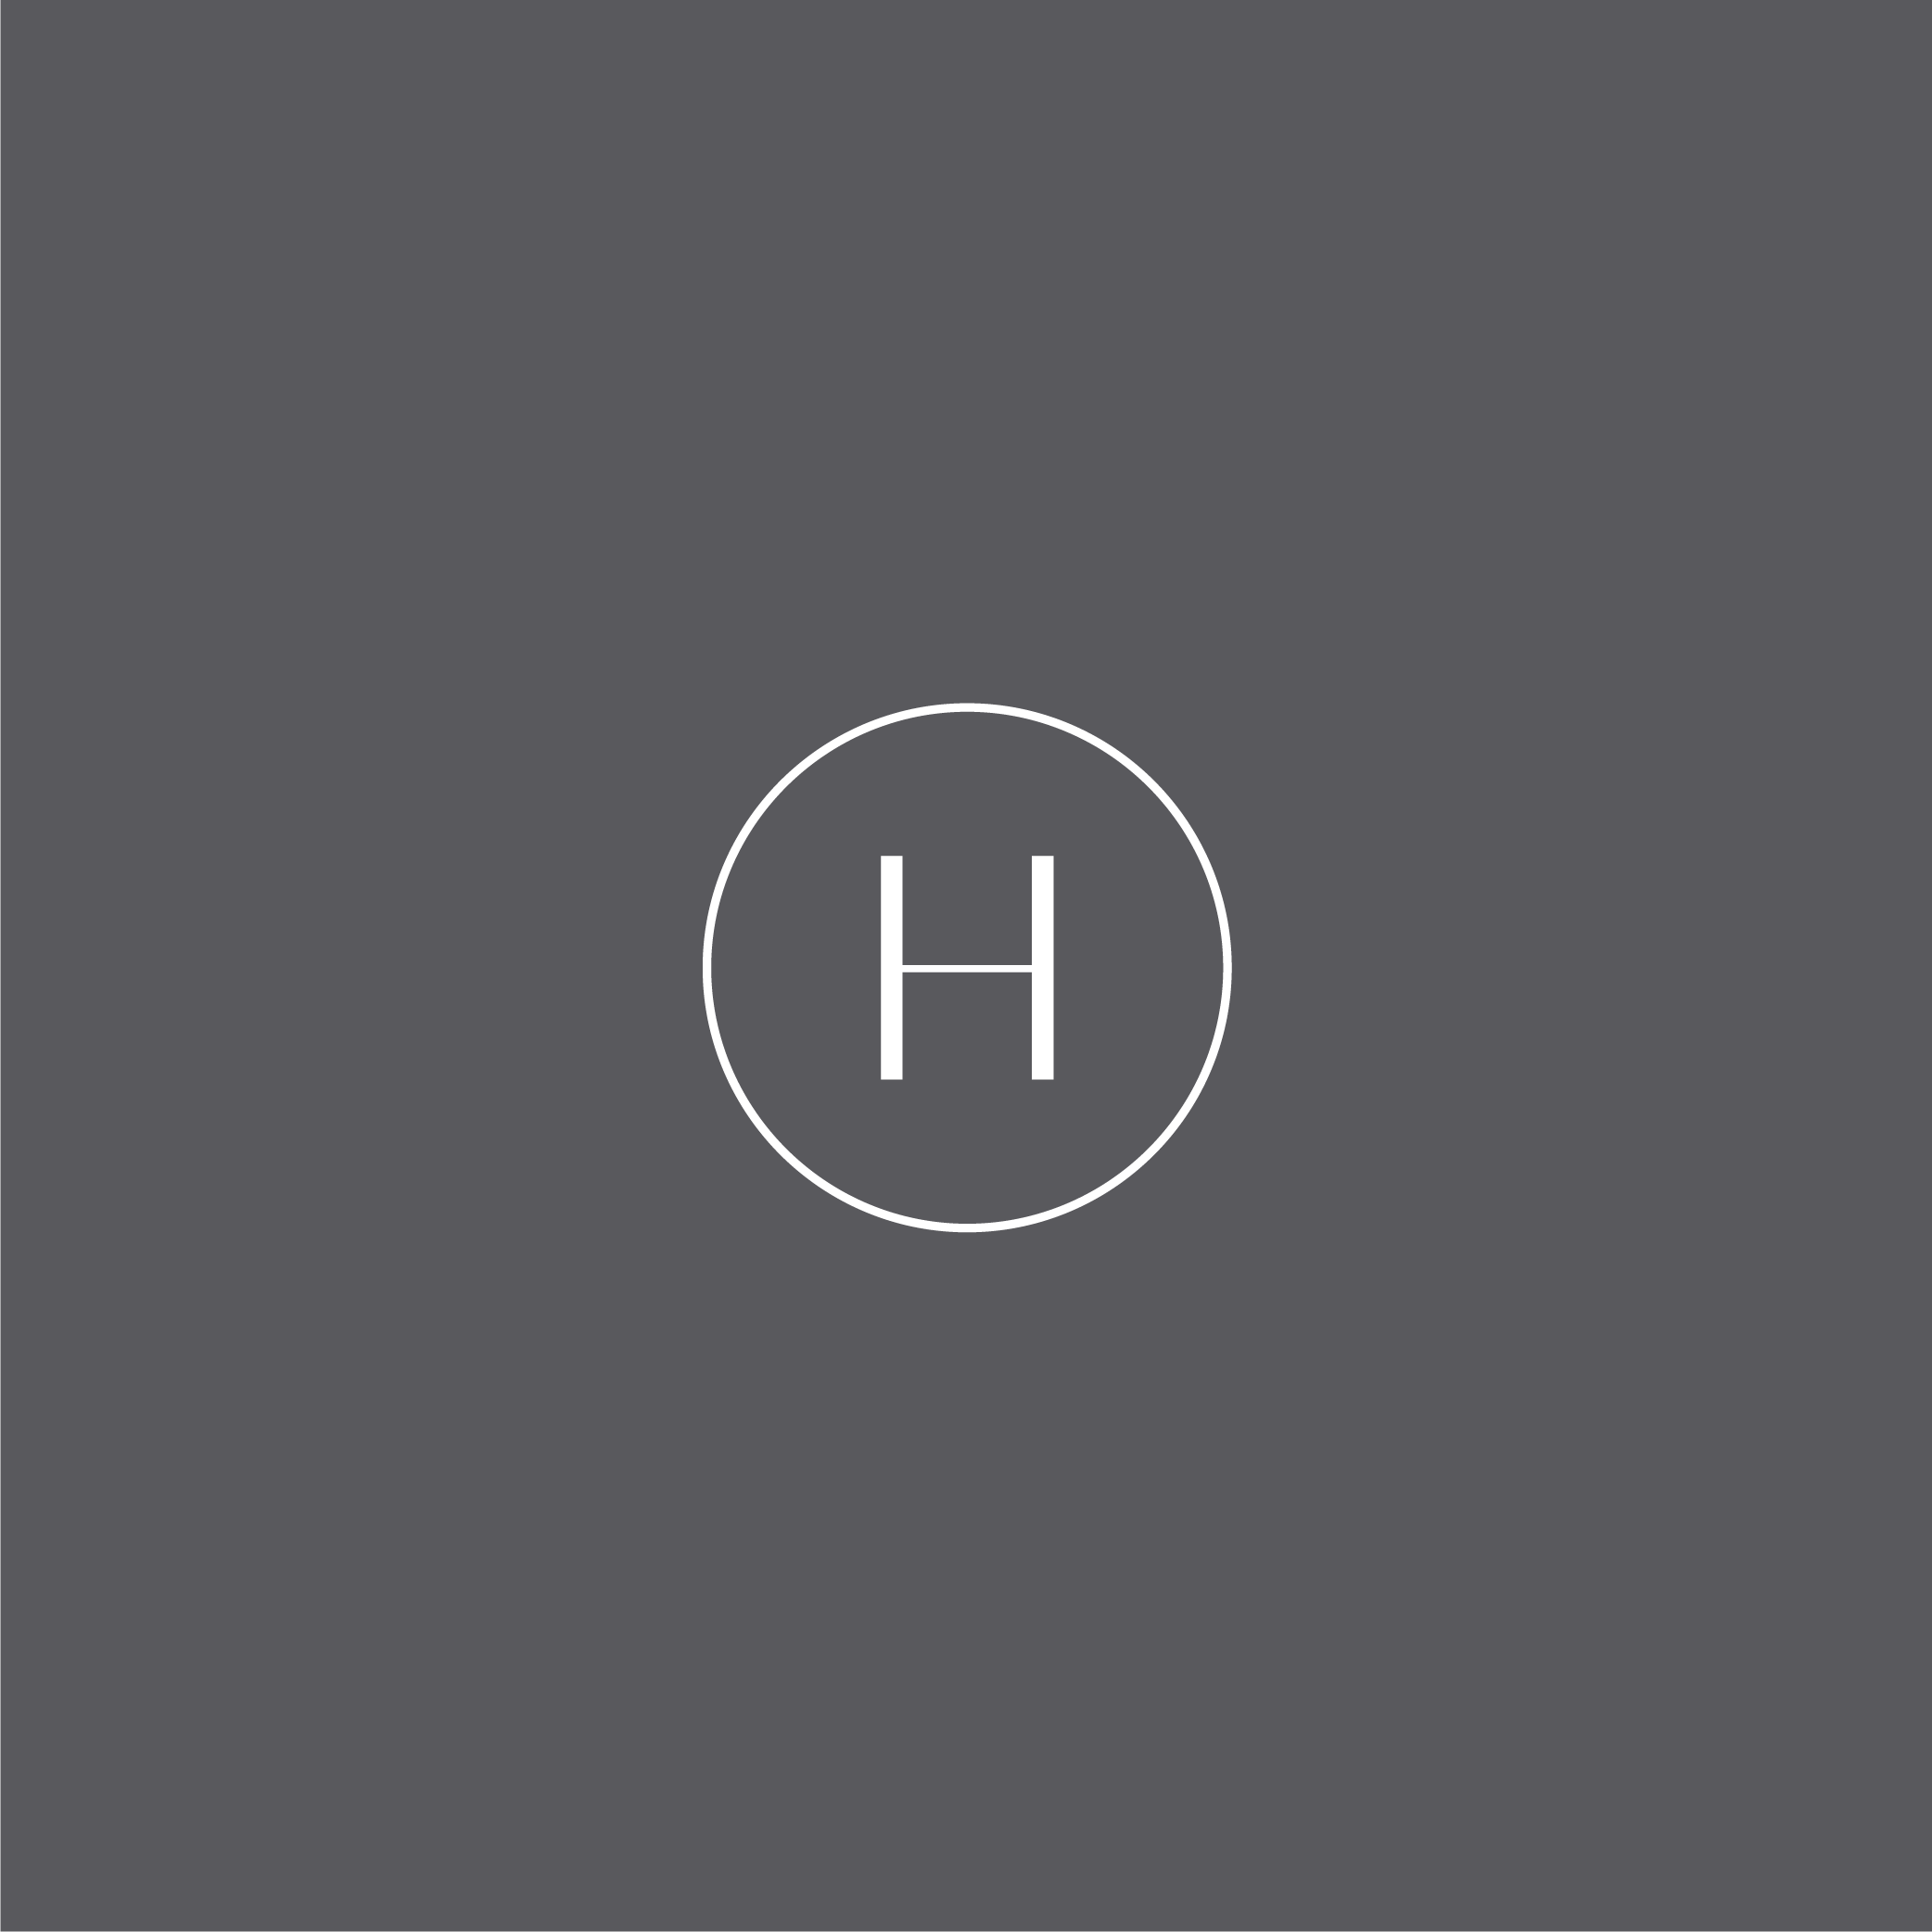 H monogram logo in a white outline circle on a grey background